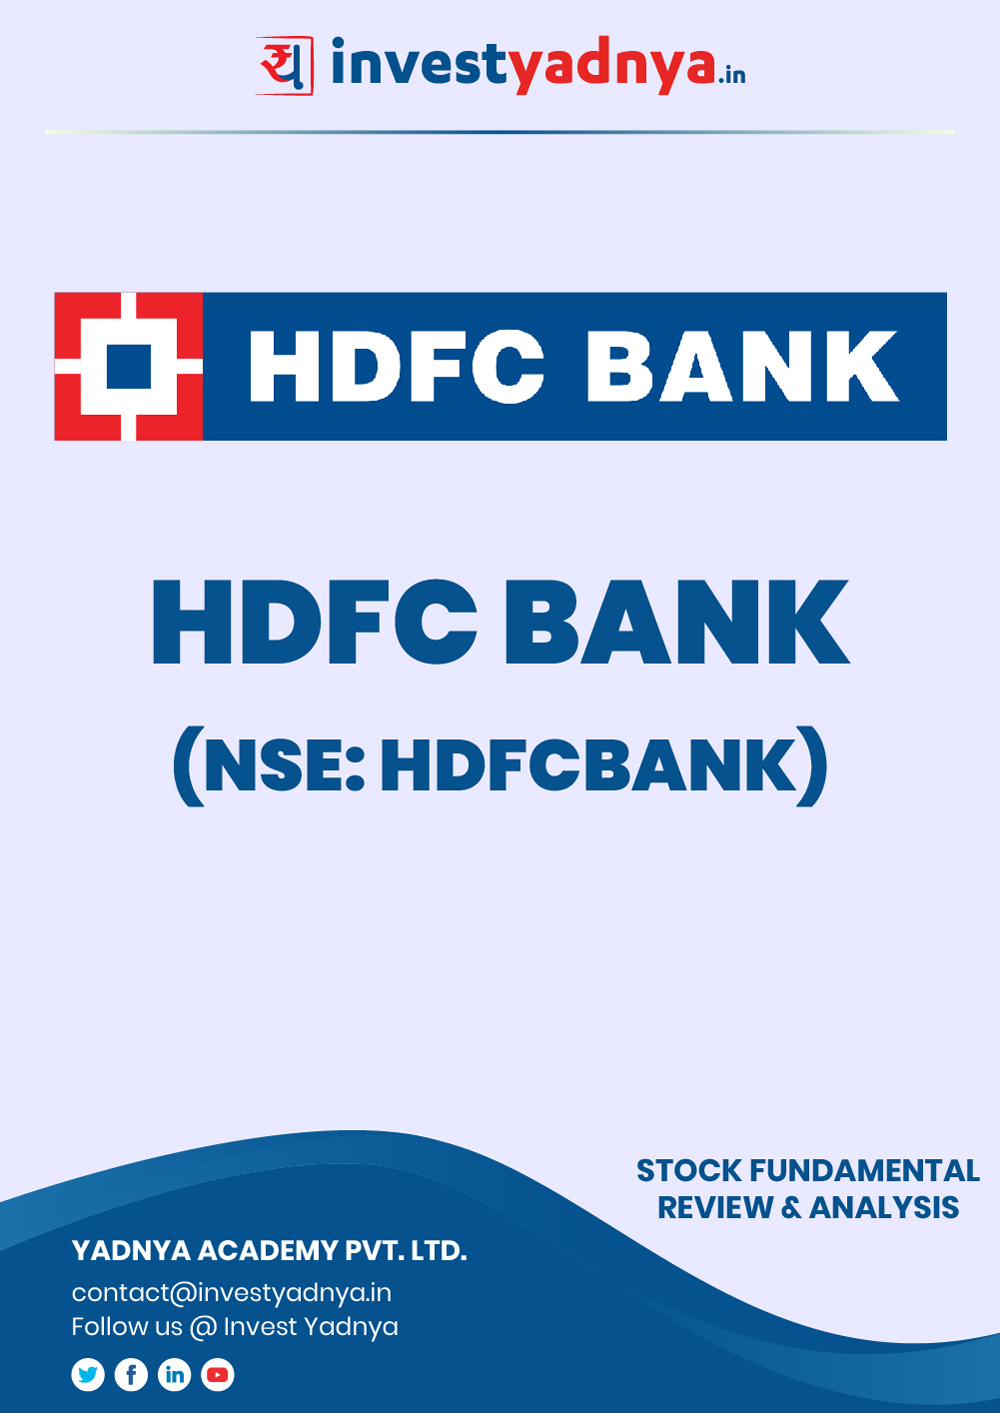 HDFC Bank is one the largest private bank in India established in 1994. It is a subsidiary of HDFC Limited. It is the biggest bank by Market value in India. HDFC Bank Ltd. company/Stock Review & Analysis based on Q22019-20 and FY2018-19 data. The ebook contains Fundamental Analysis of the company considering both Quantitative (Financial) and Qualitative parameters. Book is updated as on 20th Dec, 2019.